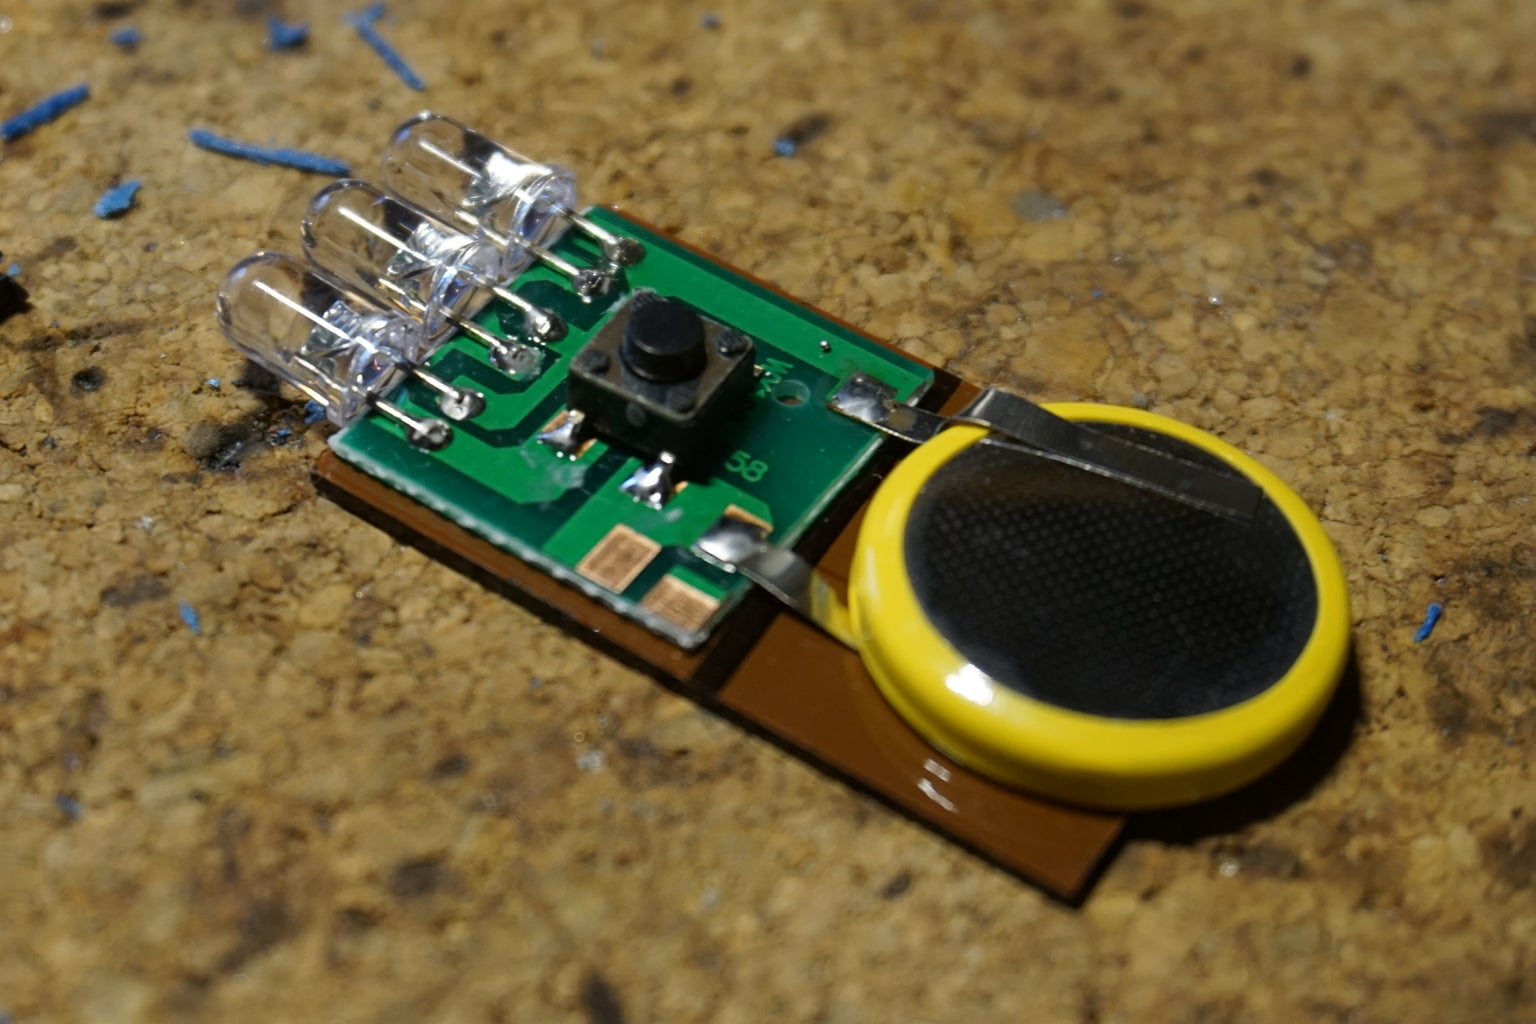 Build the Induction Light: Prepare the LEDs